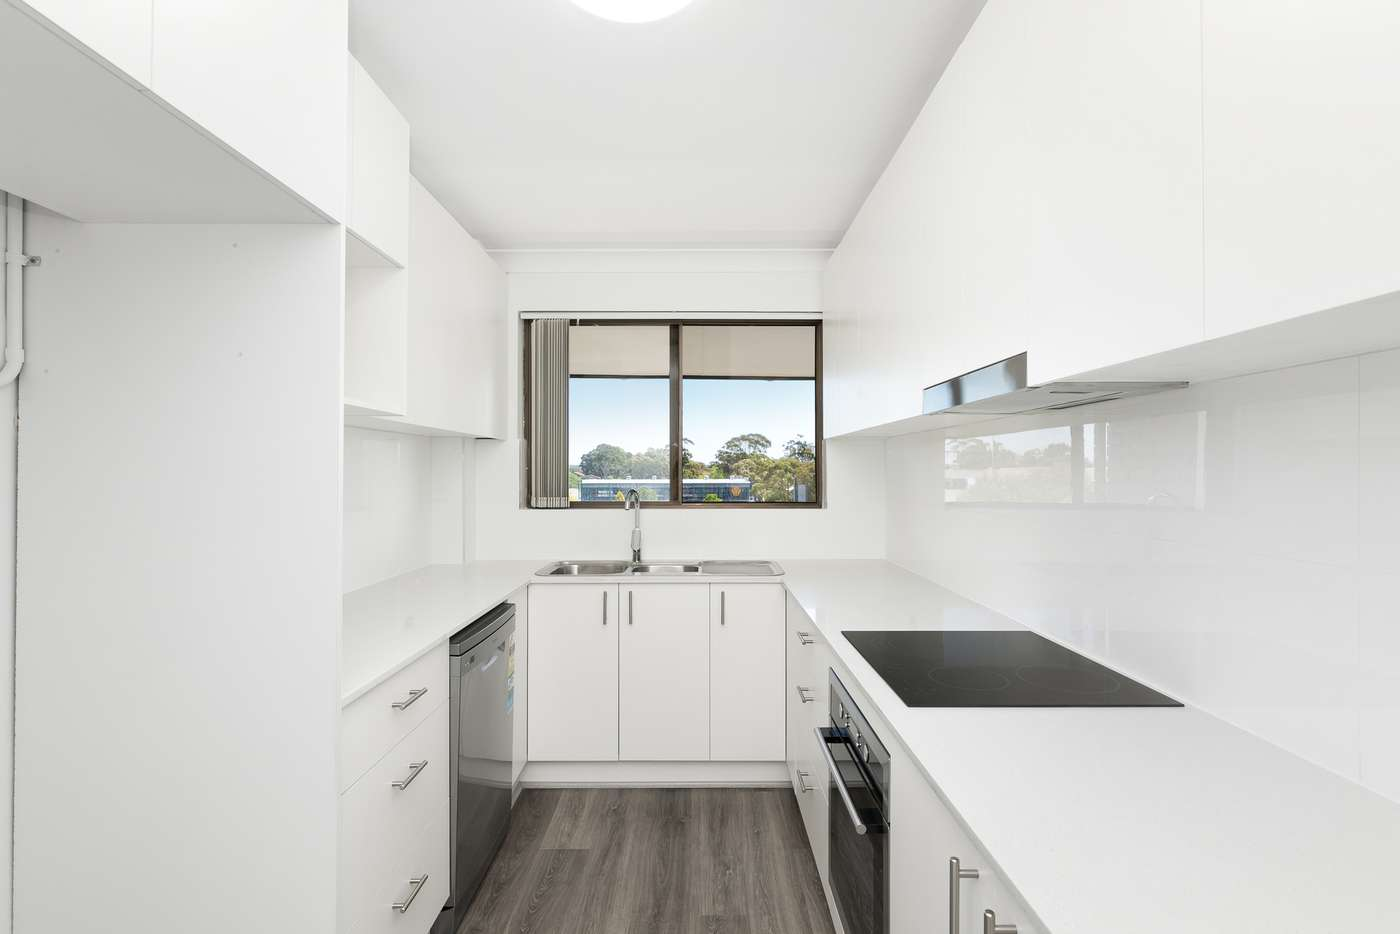 Main view of Homely apartment listing, 8/392 Port Hacking Road, Caringbah NSW 2229